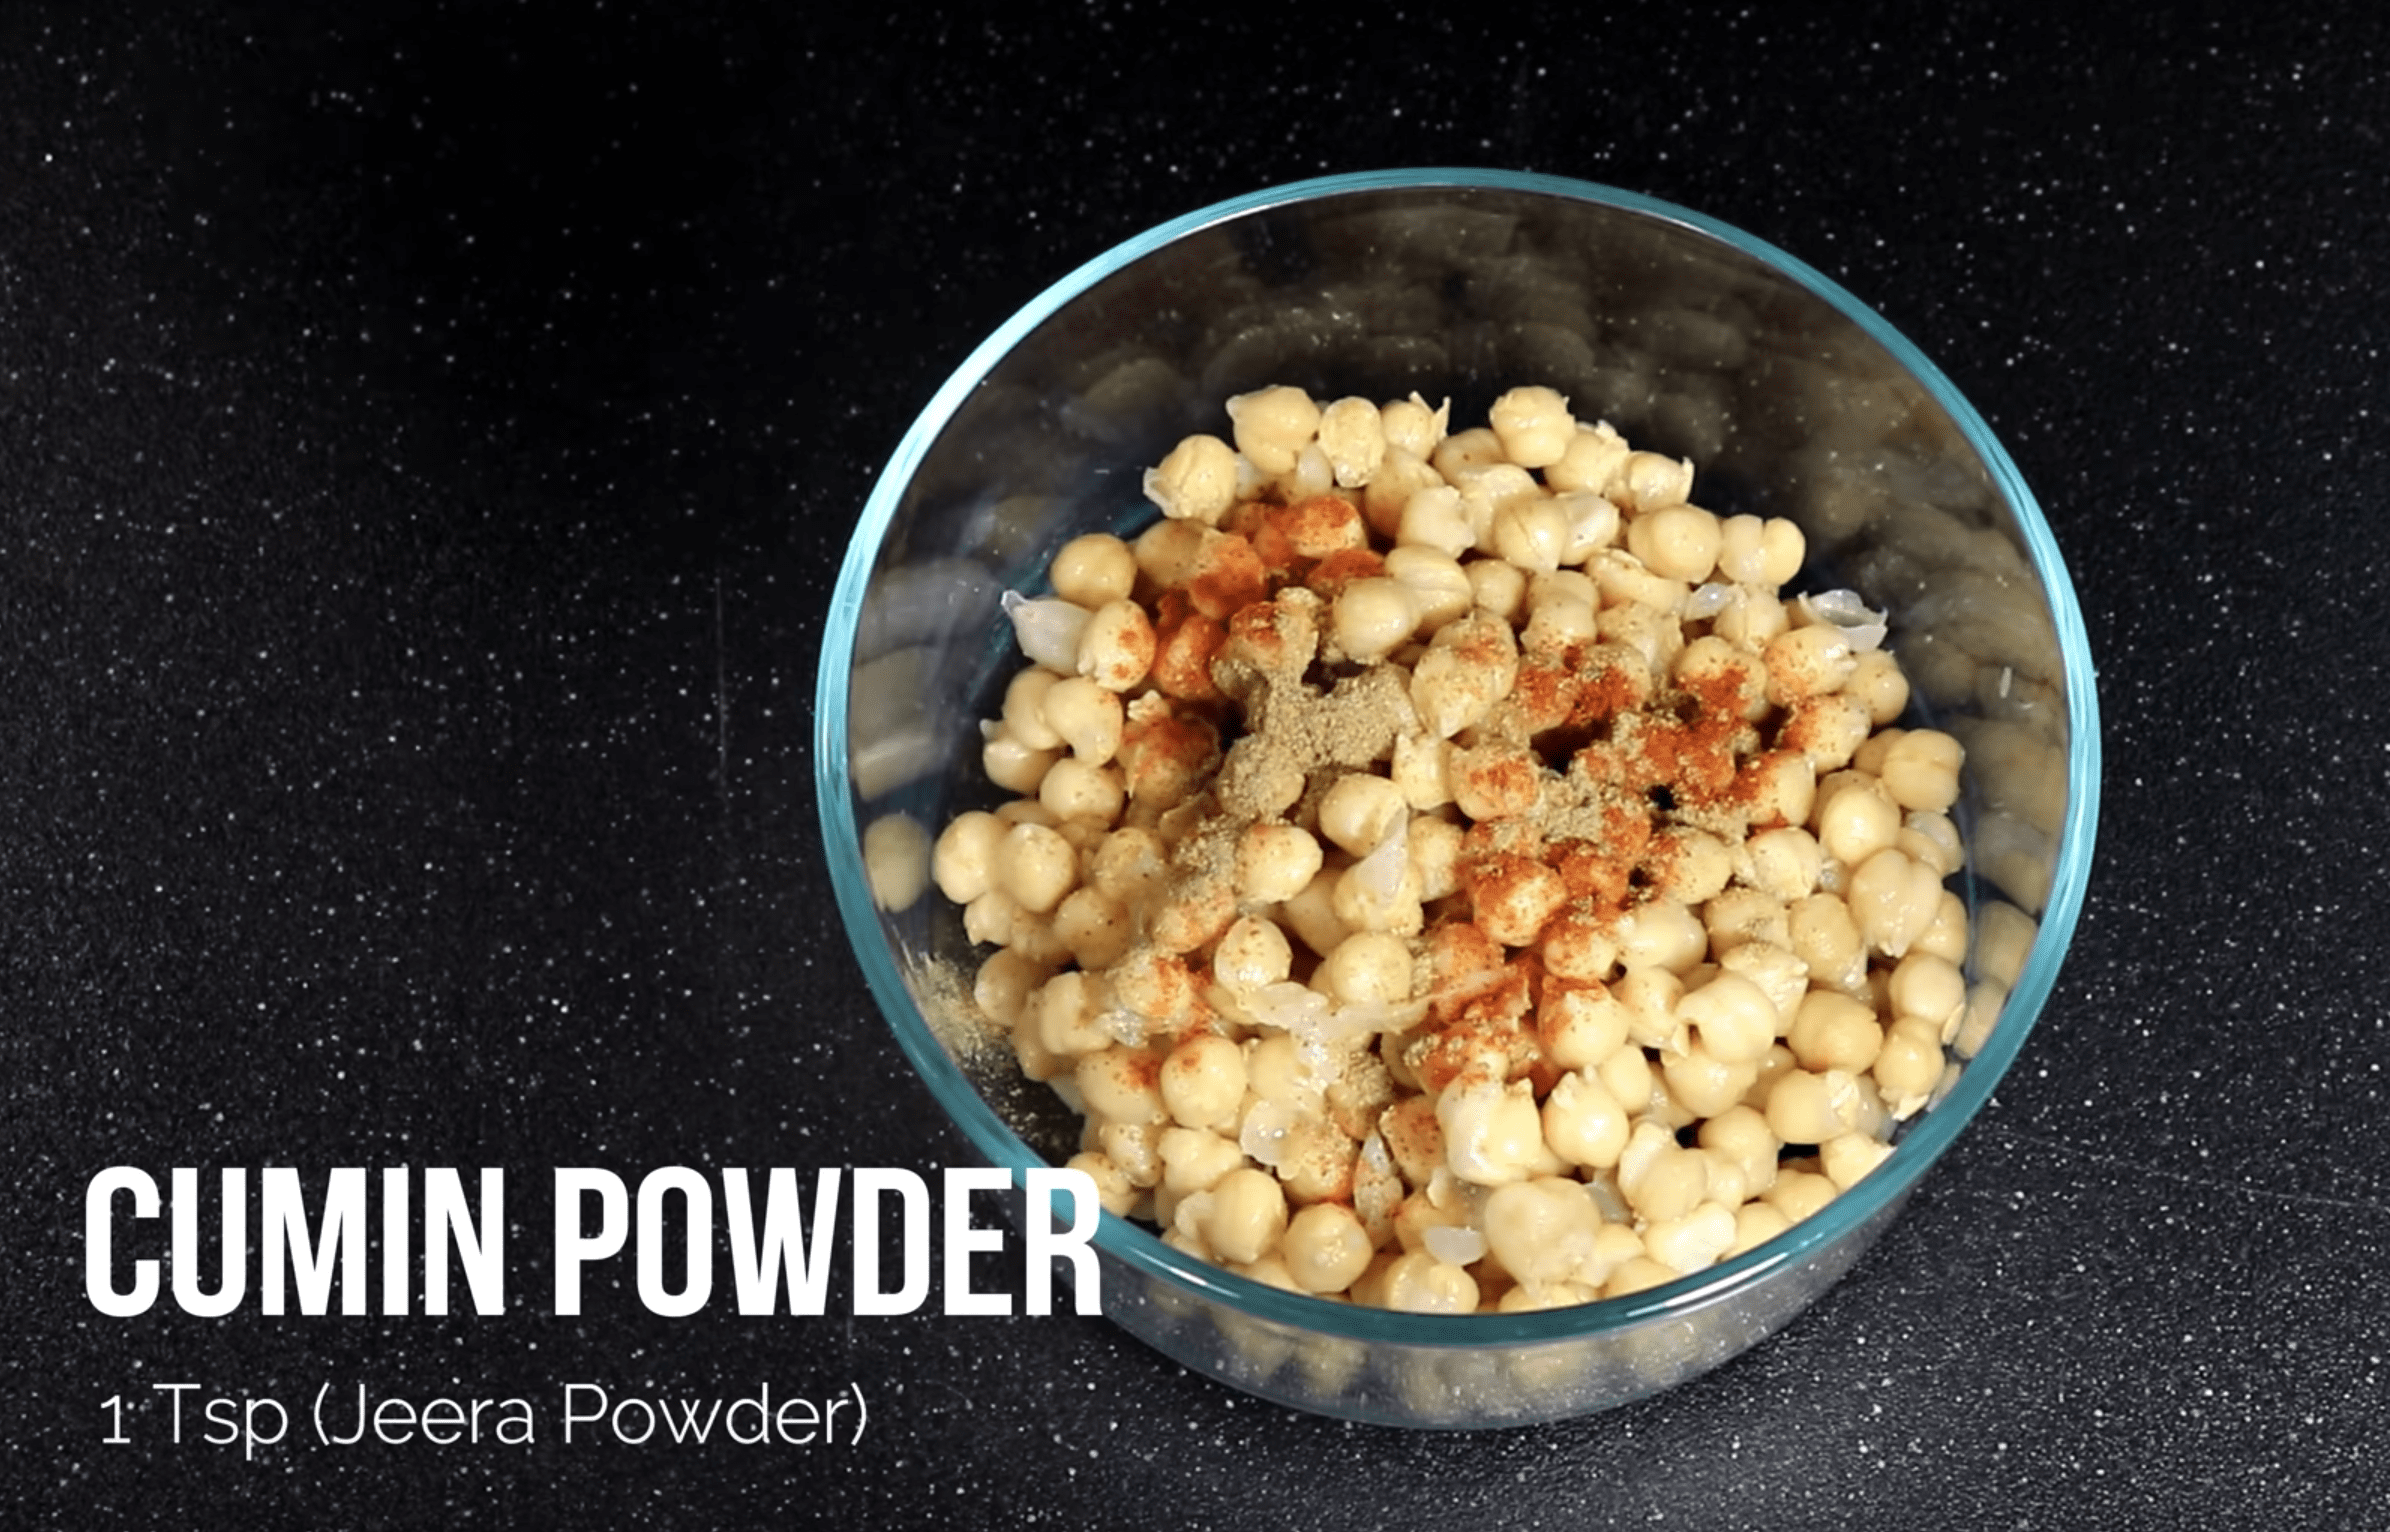 1 TSP Cumin Powder in the mixture for chana chaat chickpea recipe